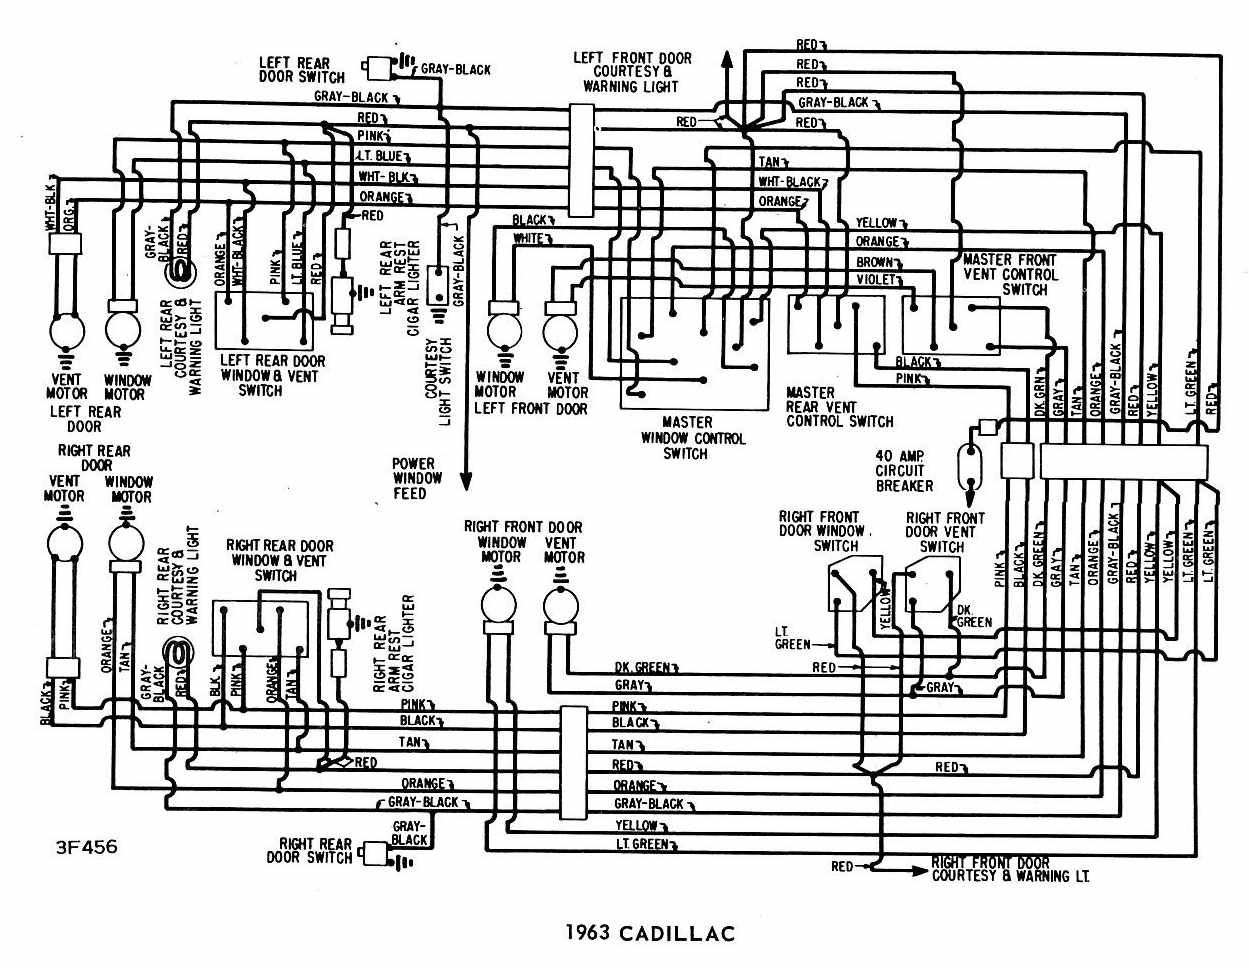 Cadillac Wiring Diagrams Automotive Guide And Troubleshooting Of 1990 Chevy Truck Fuel Pump Diagram For 1976 Monza Third Rh 7 21 Jacobwinterstein Com